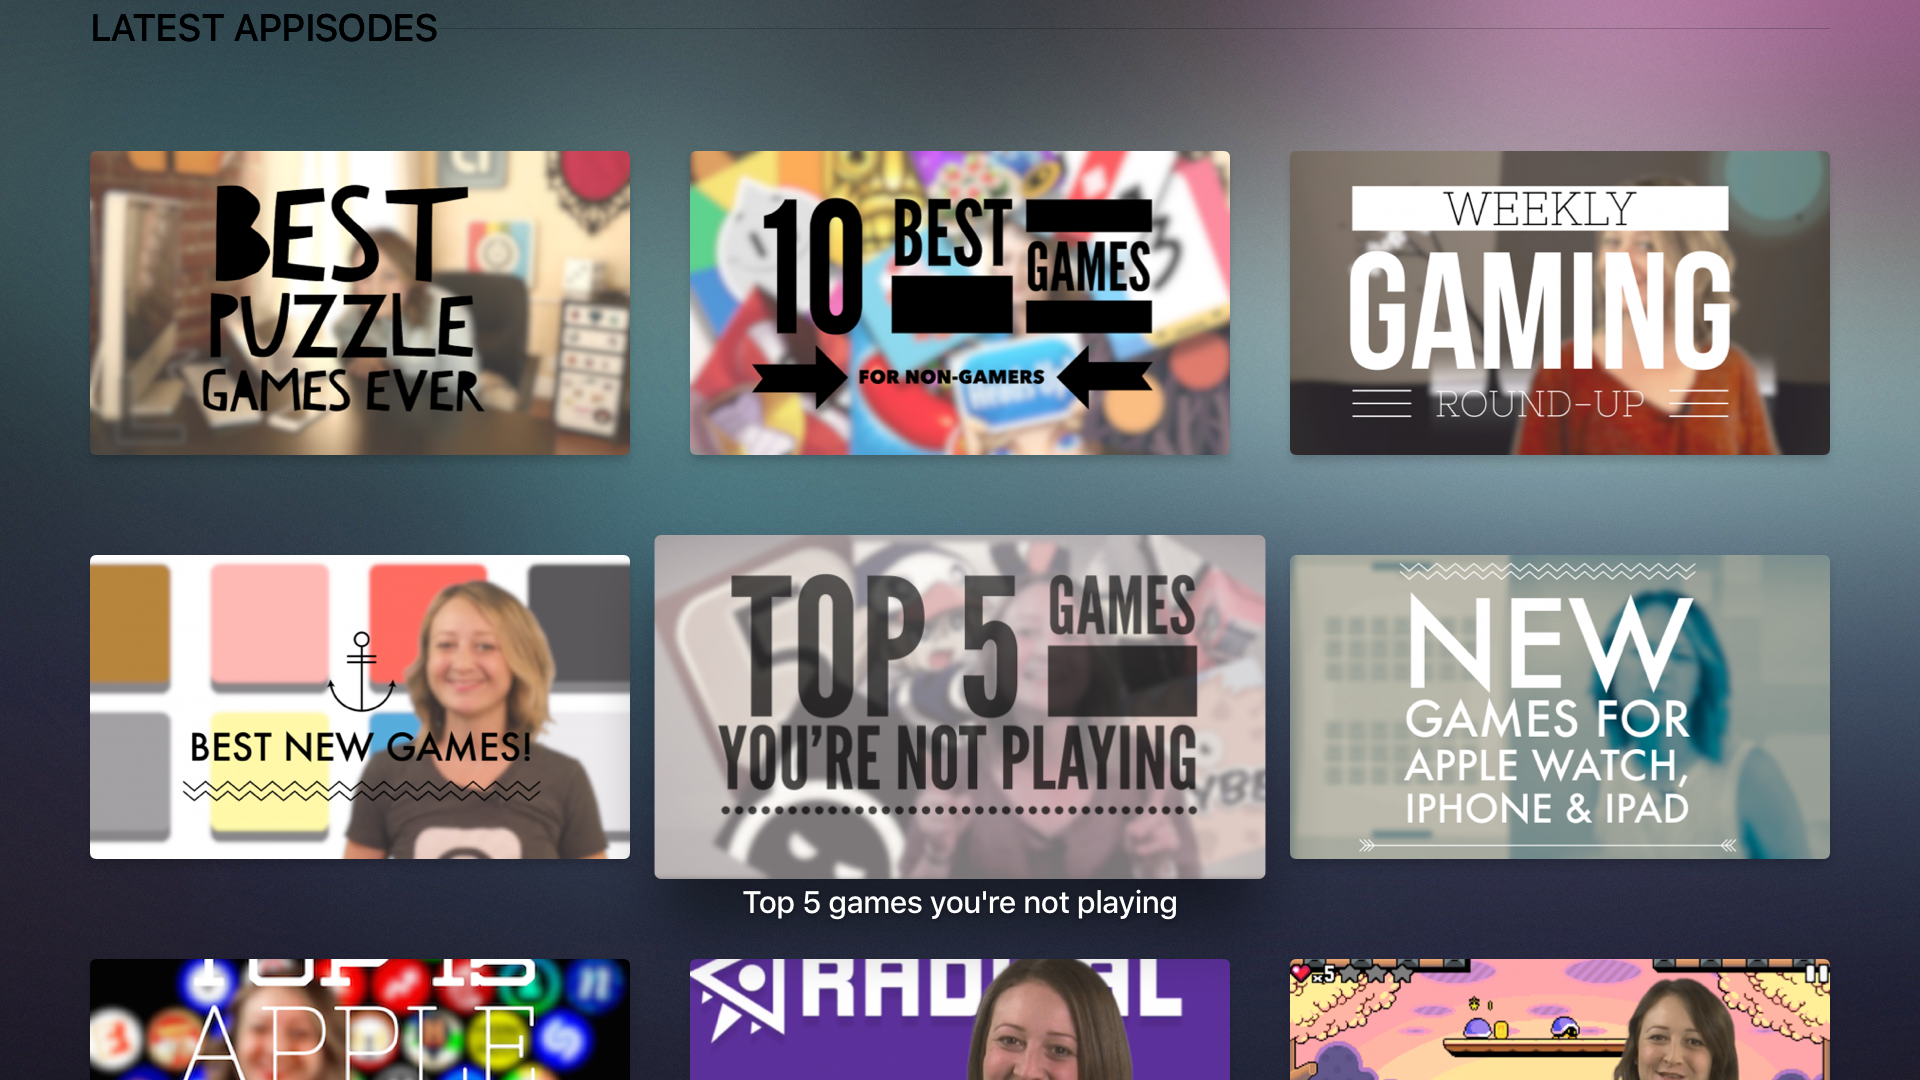 NowGAMING - The Top Game Previews, Trailers, Cheats & App Advice screenshot 2